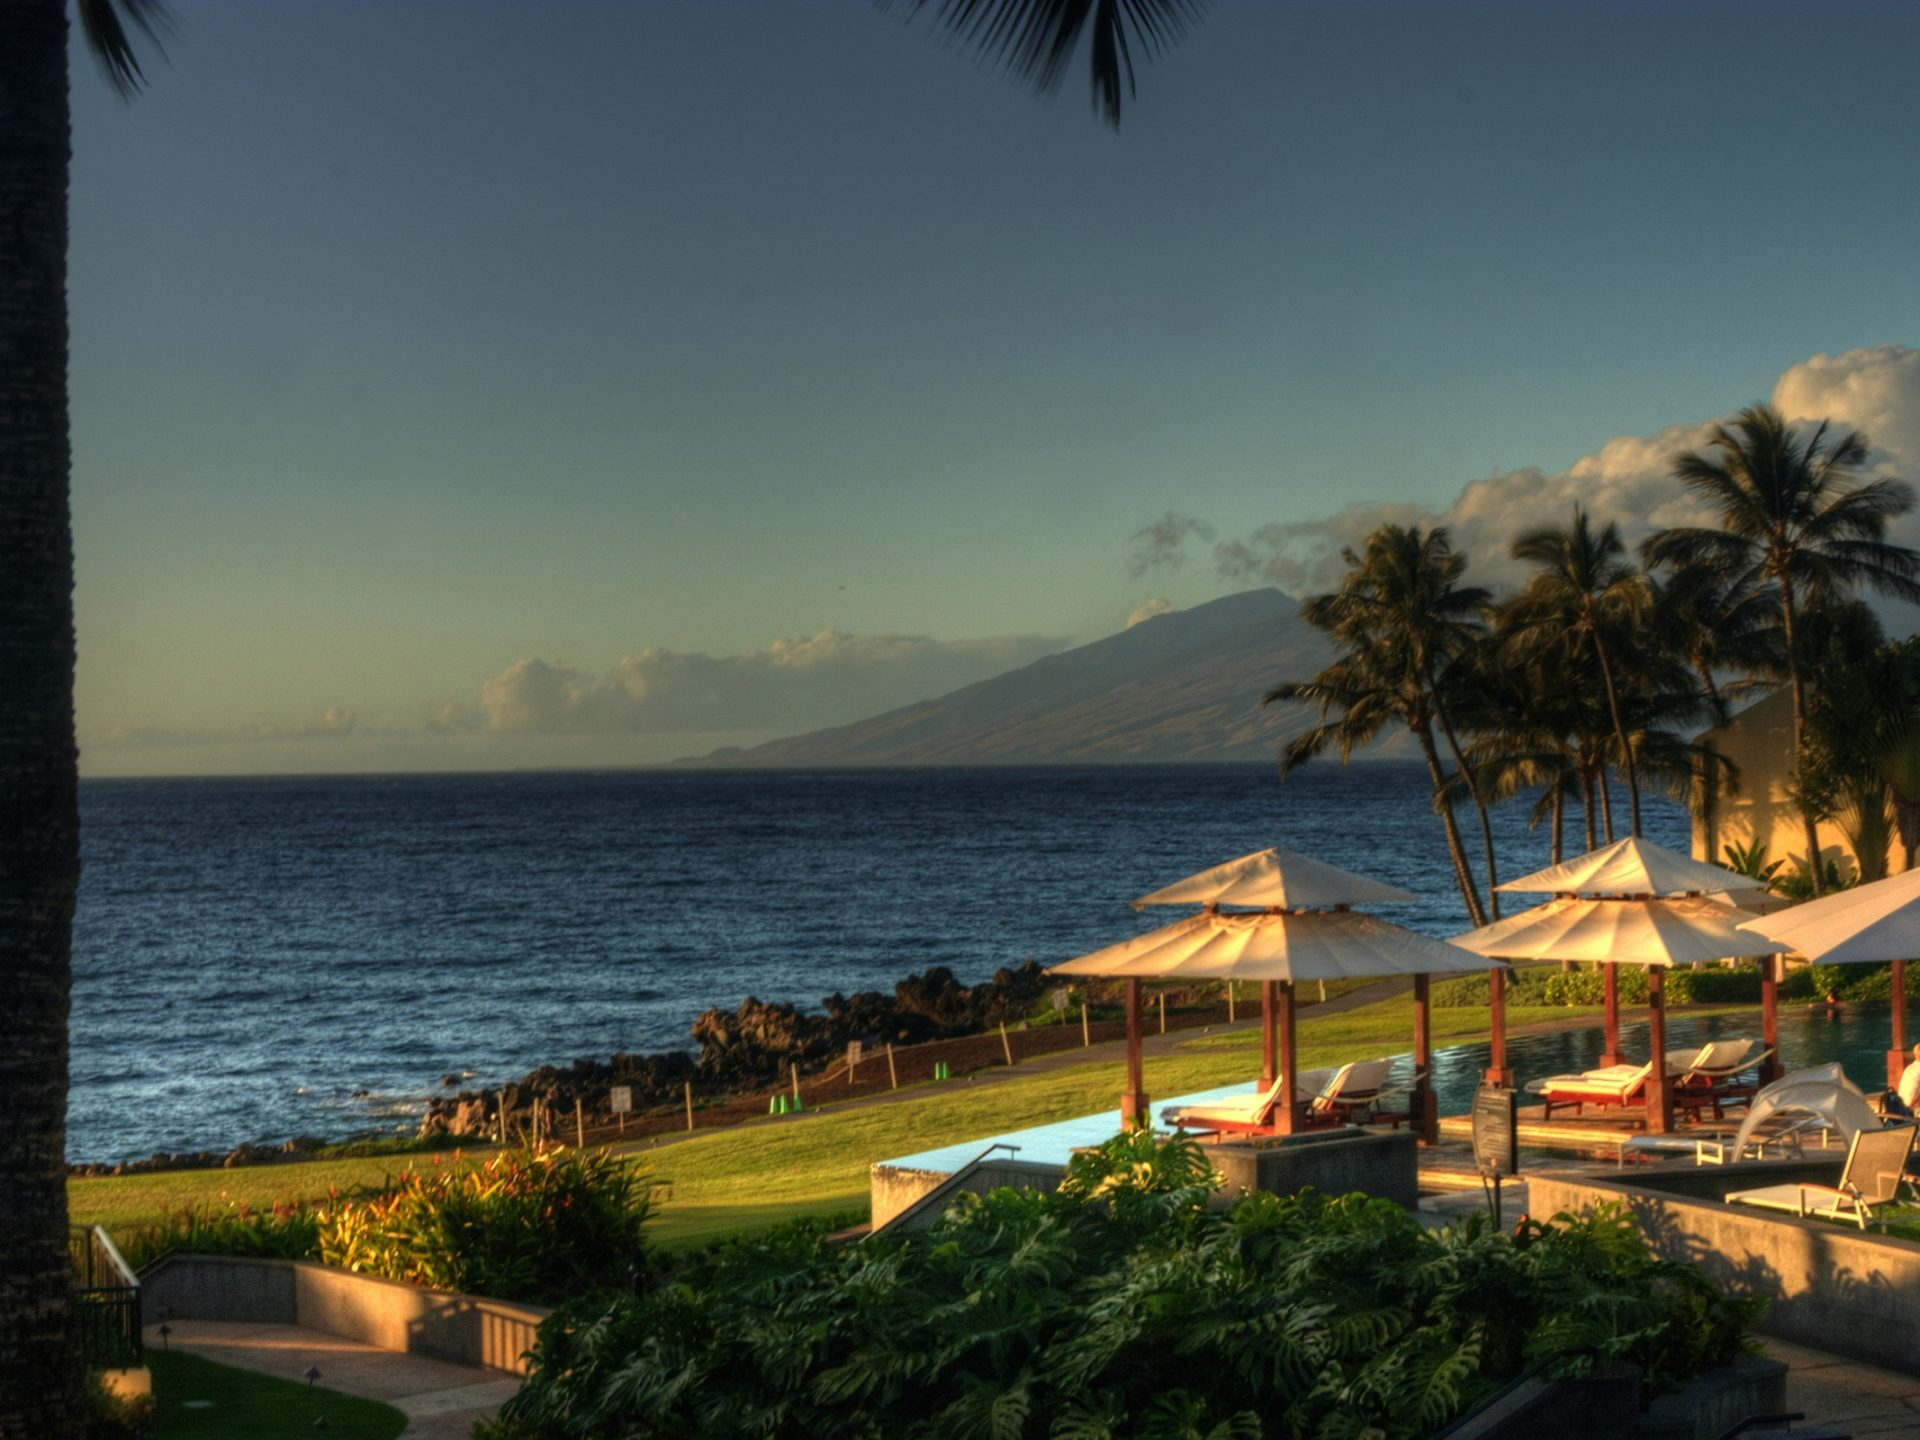 Iphone 4 Wallpaper Resolution Wailea Maui Hawaii Desktop Background 560636